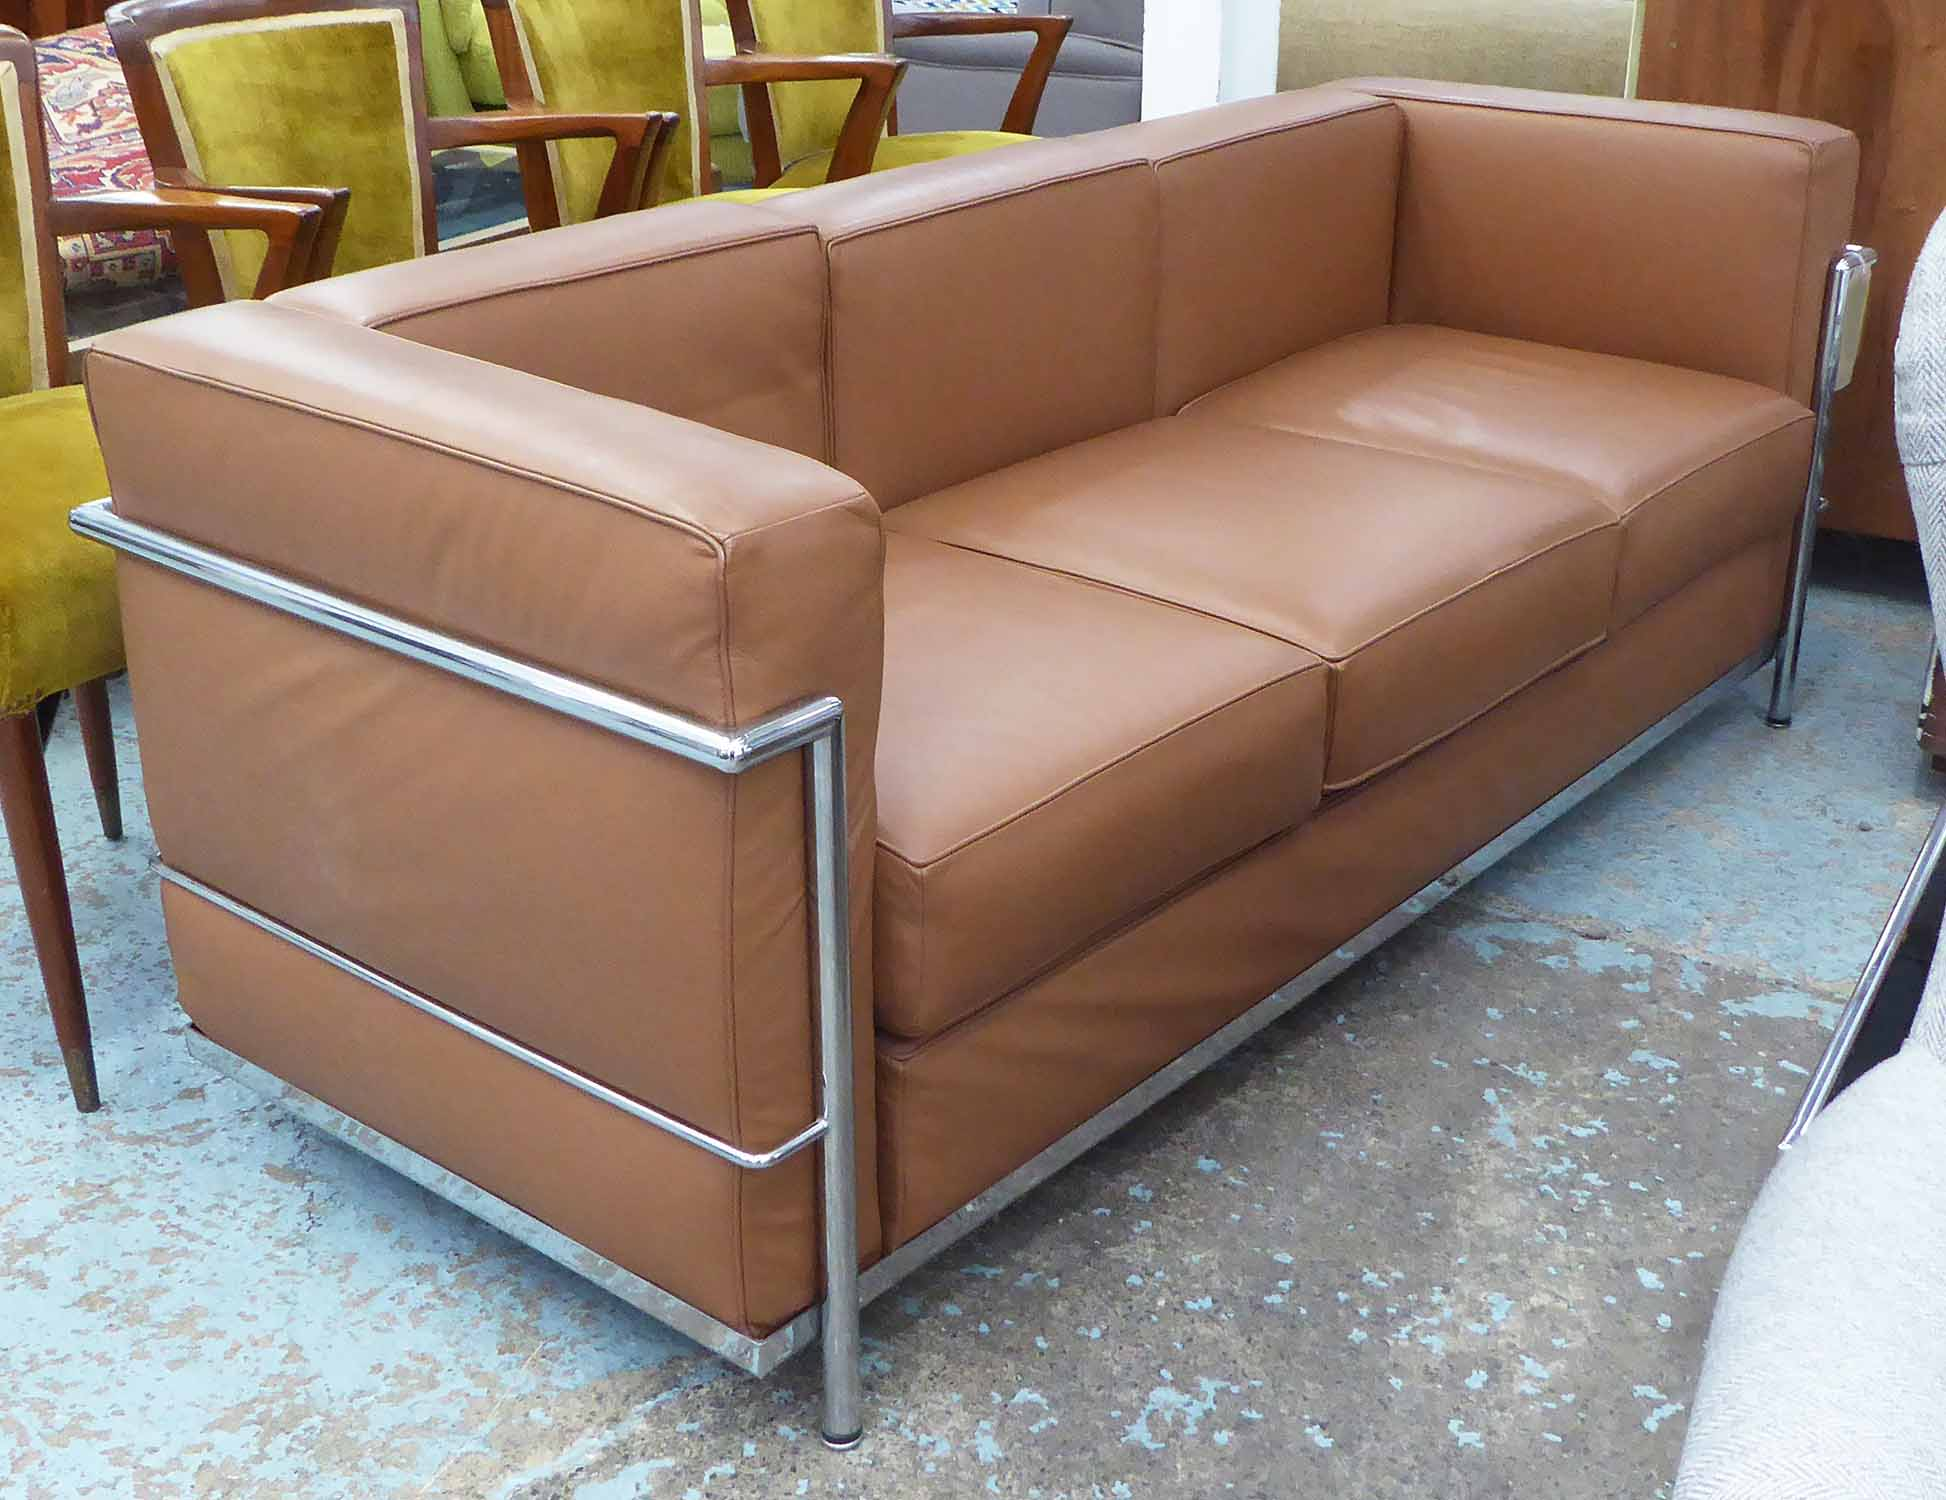 Lot 21 - SOFA, after Corbusier tubular metal frame brown leather upholstery, 180cm x 70cm.